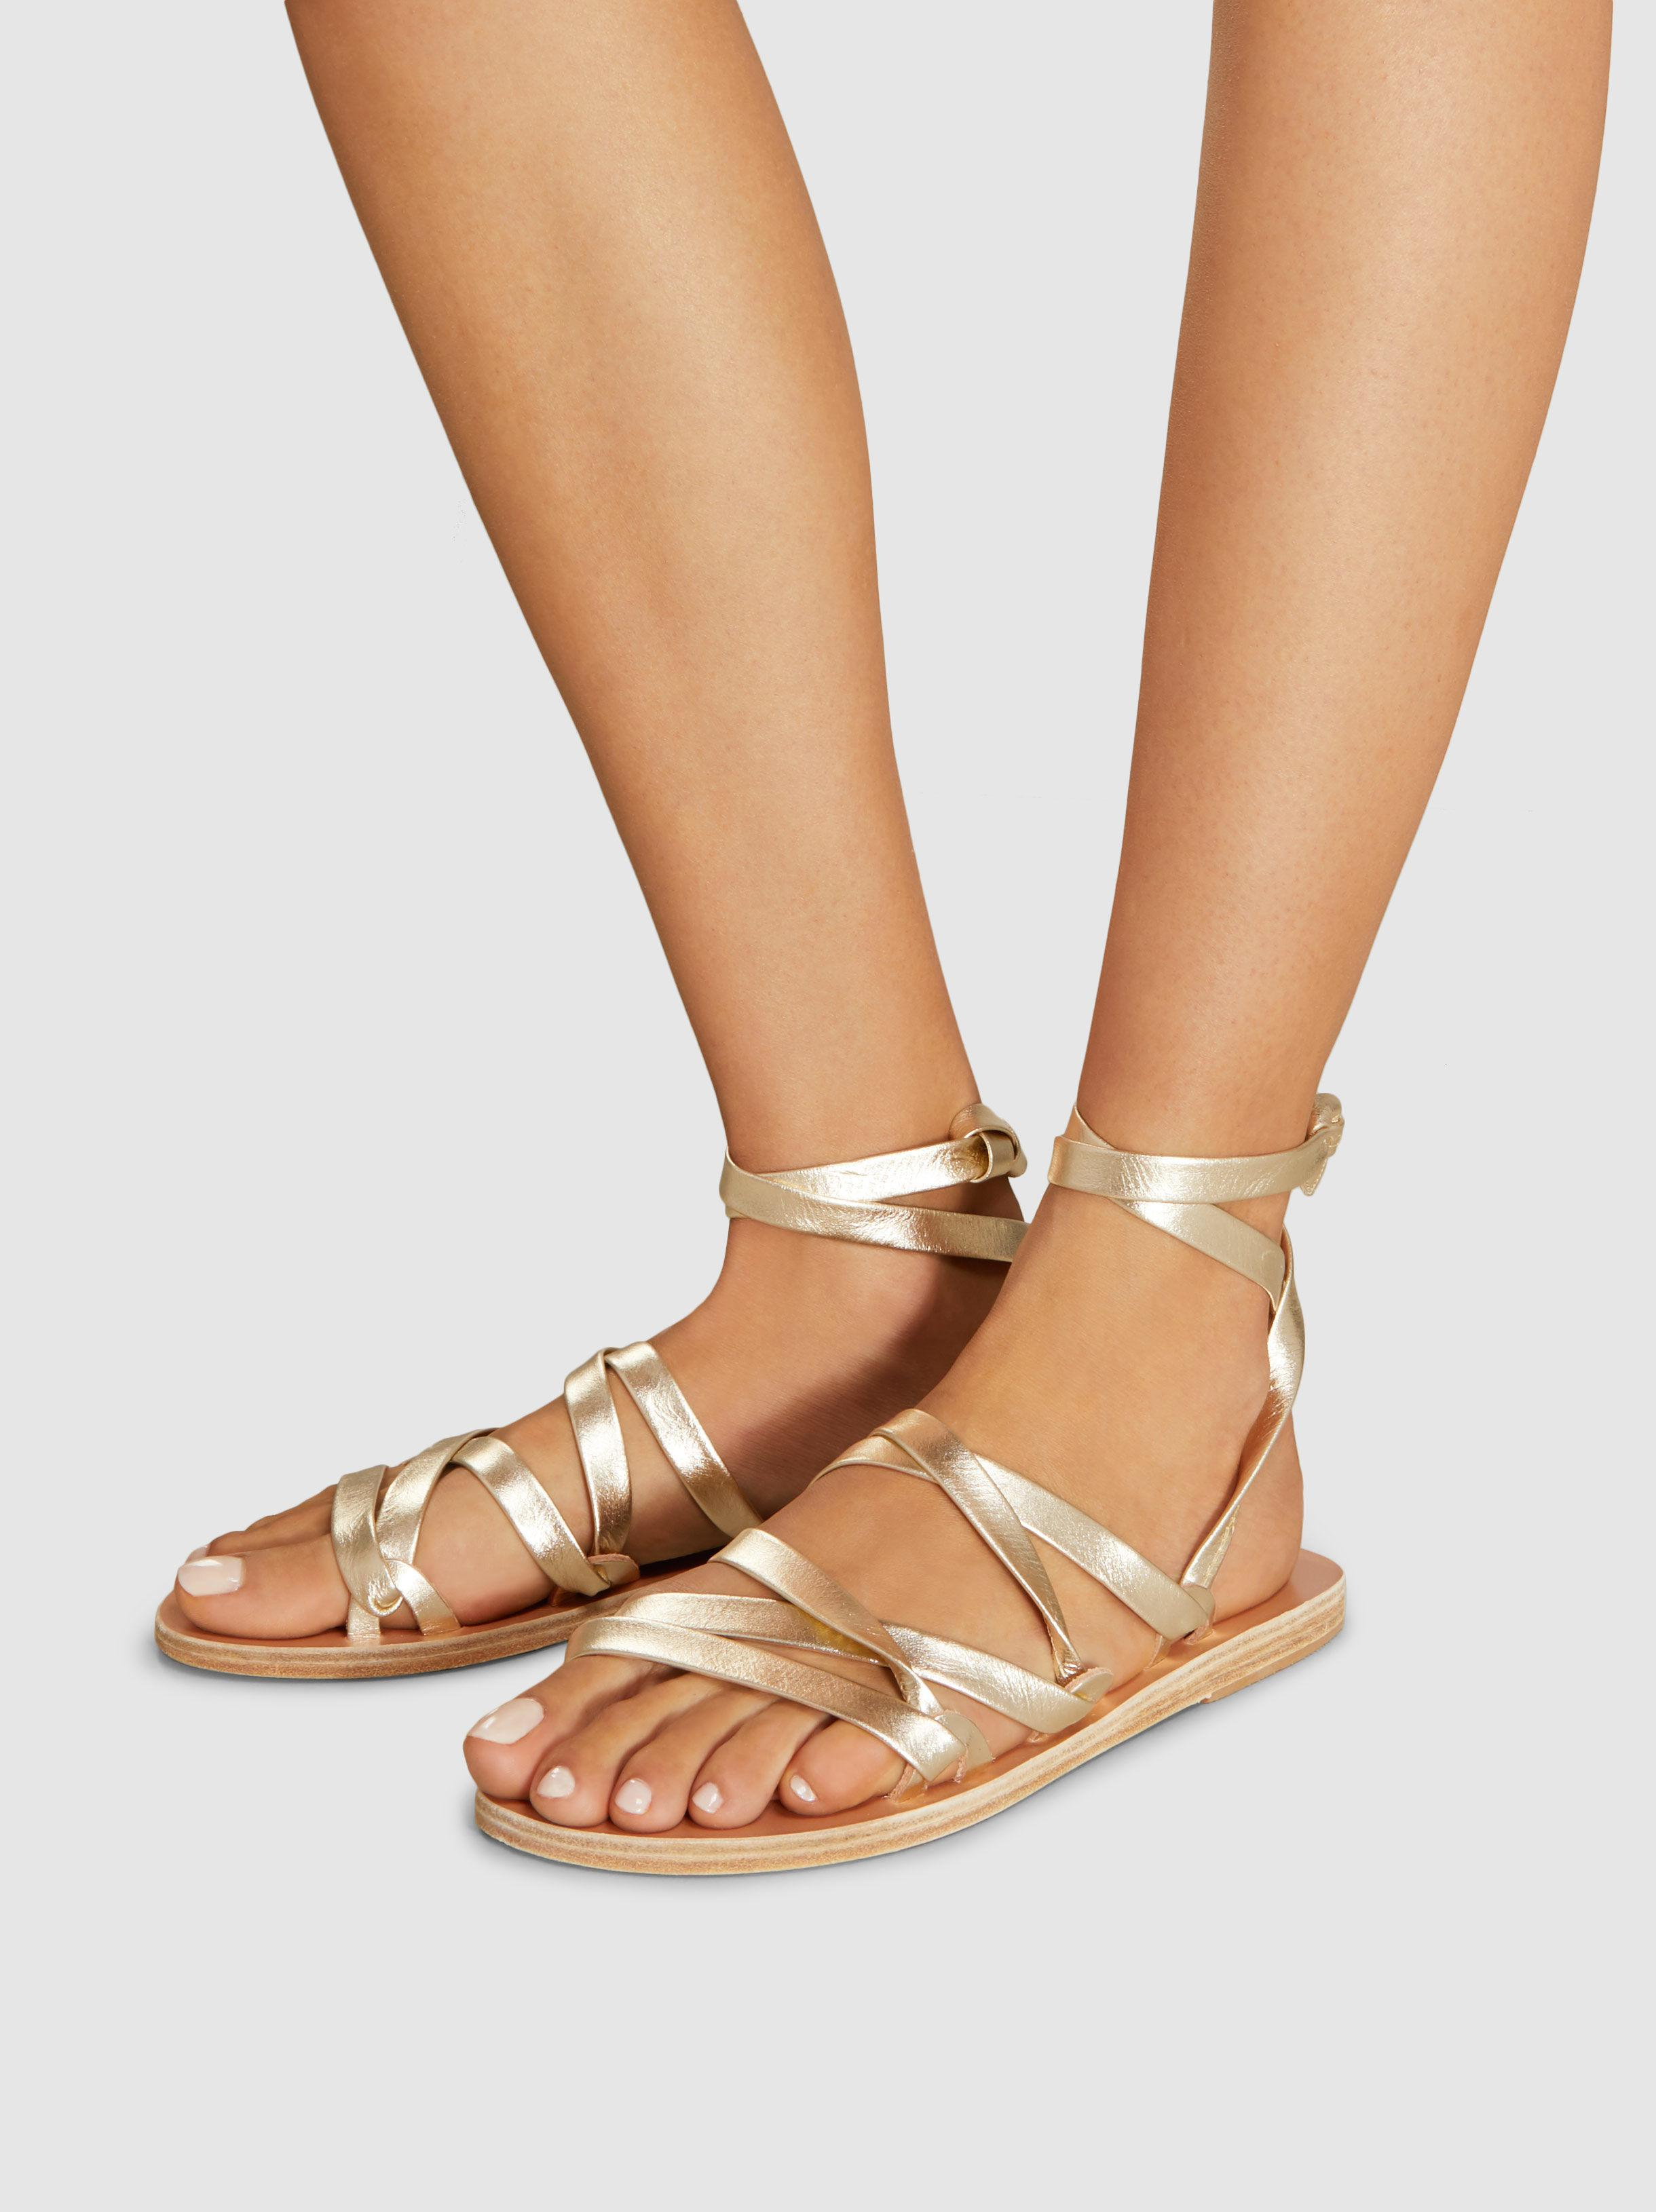 Simply Kariatida Low Metallic Leather Sandals Ancient Greek Sandals JKI8Z